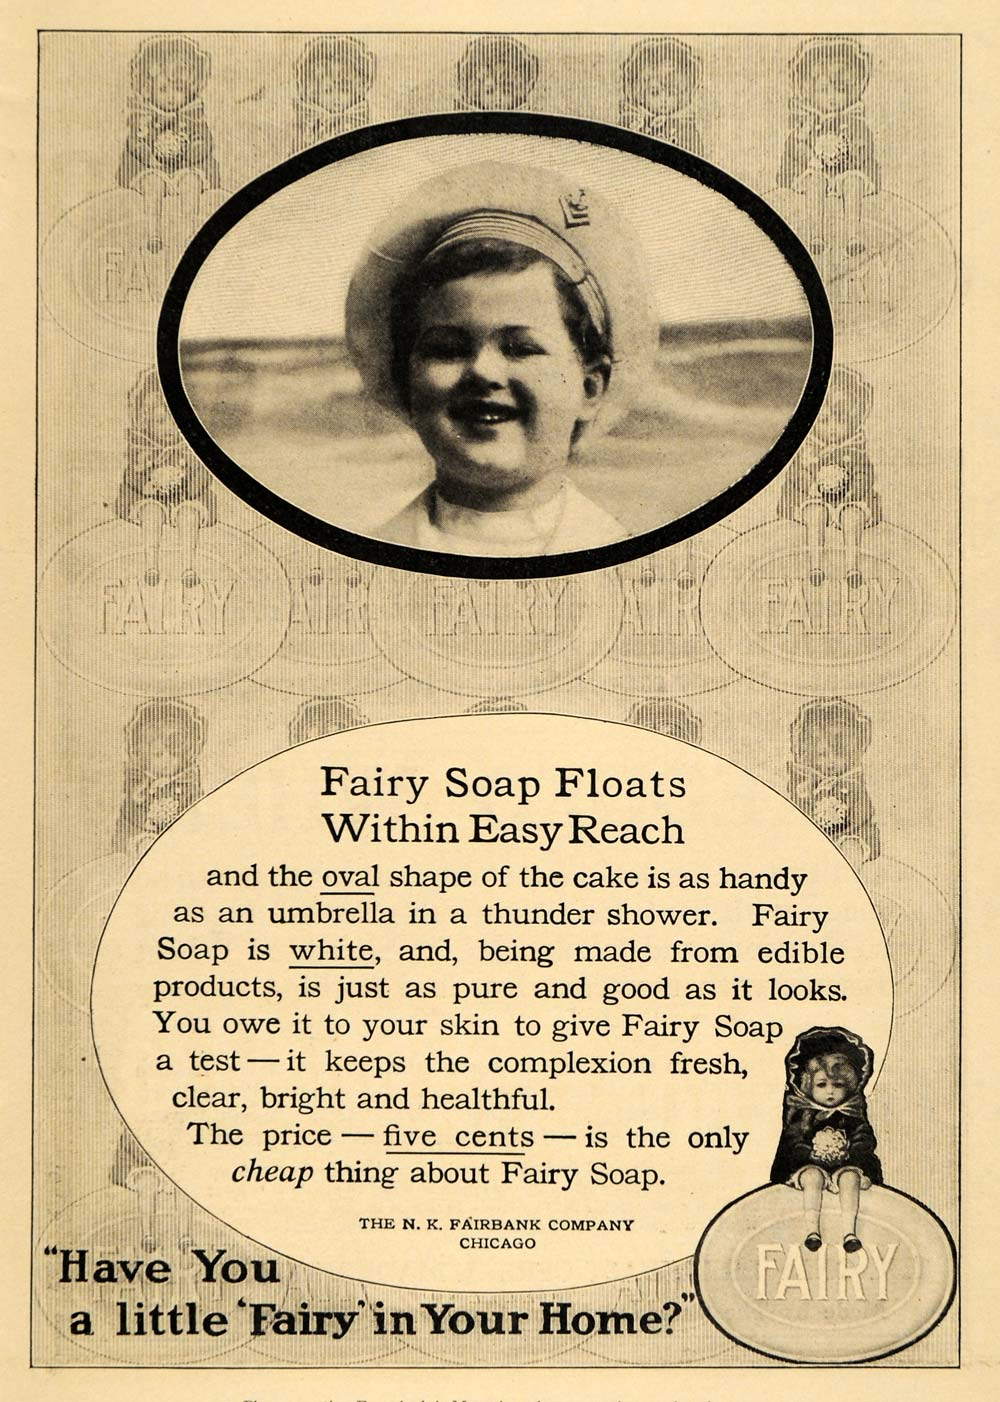 1911 Ad Nathaniel Fairbank Fairy Soap Procter Gamble - ORIGINAL ADVERTISING EM1